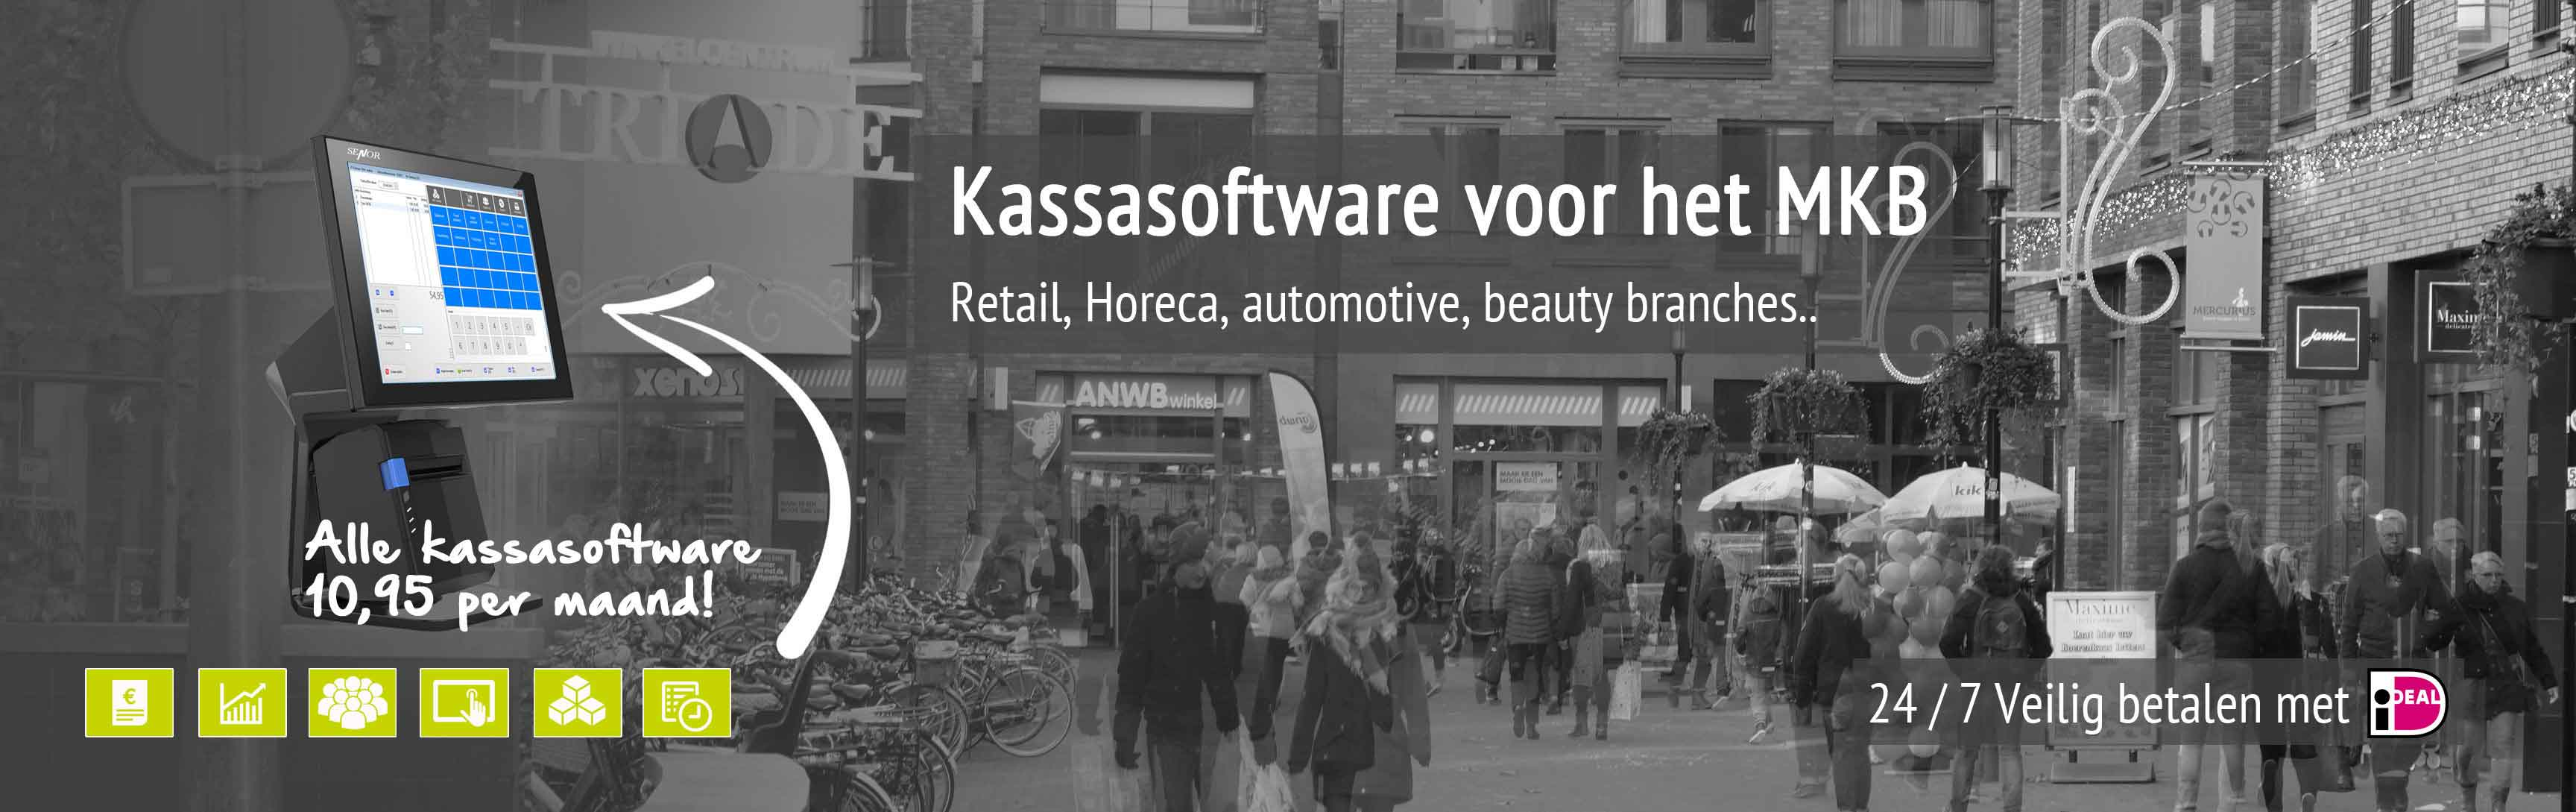 kassasoftware, salon software, garage software & kassasystemen